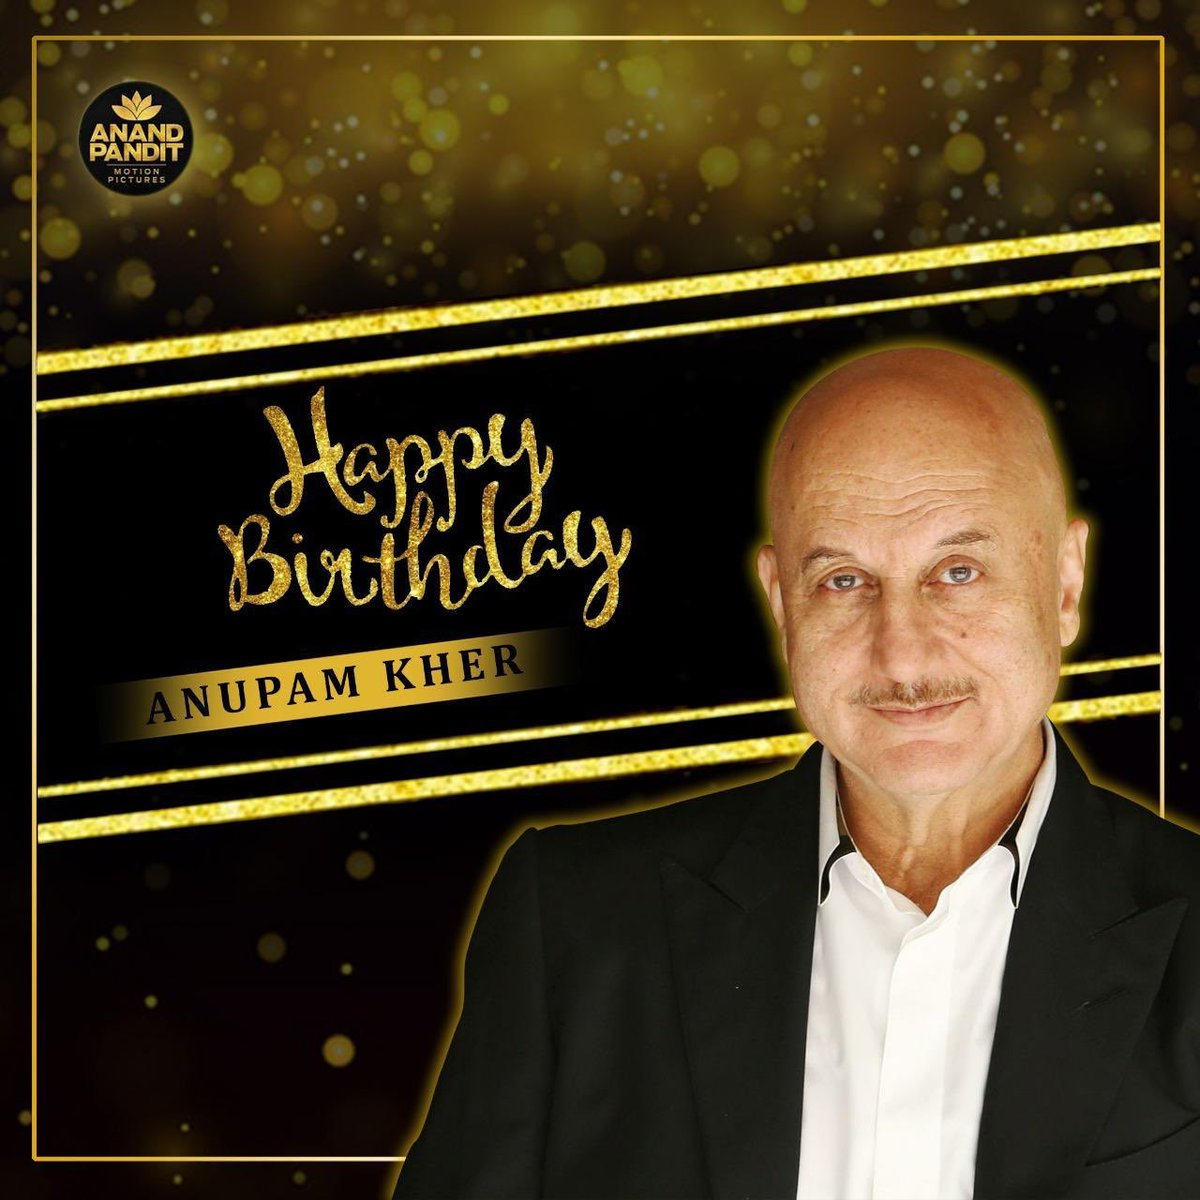 Wishing the most loved figure of our industry @AnupamPKher. Hope you have a happy and an amazing year ahead.  . #HappyBirthday #HappyBirthdayAnupamKher https://t.co/0lt54Rtil5